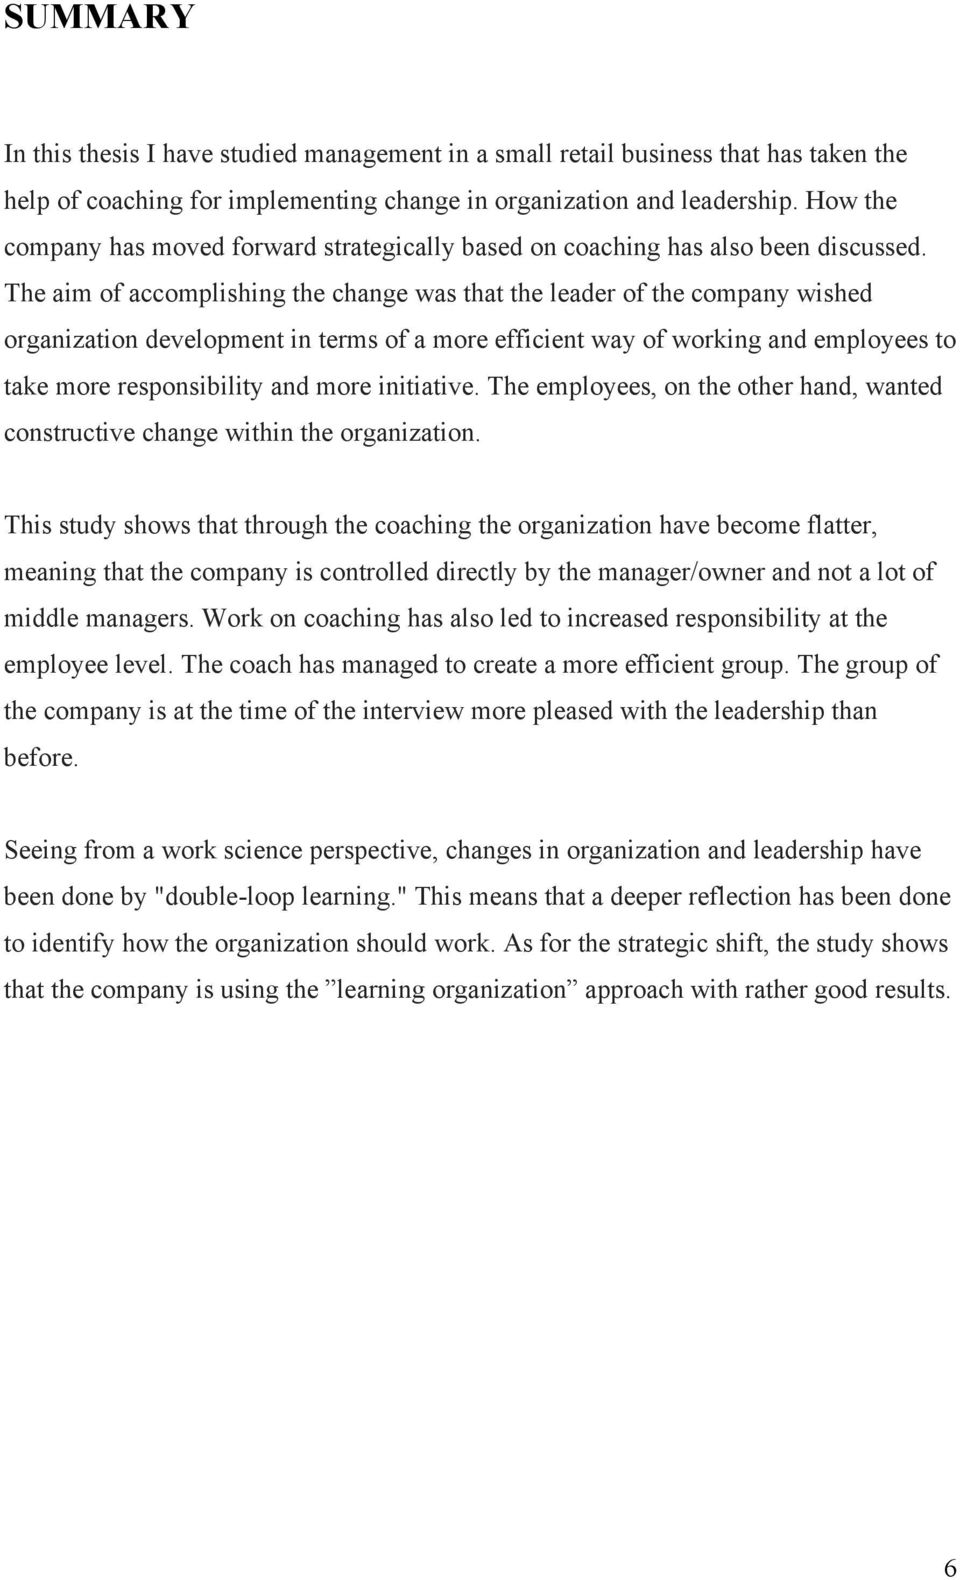 The aim of accomplishing the change was that the leader of the company wished organization development in terms of a more efficient way of working and employees to take more responsibility and more